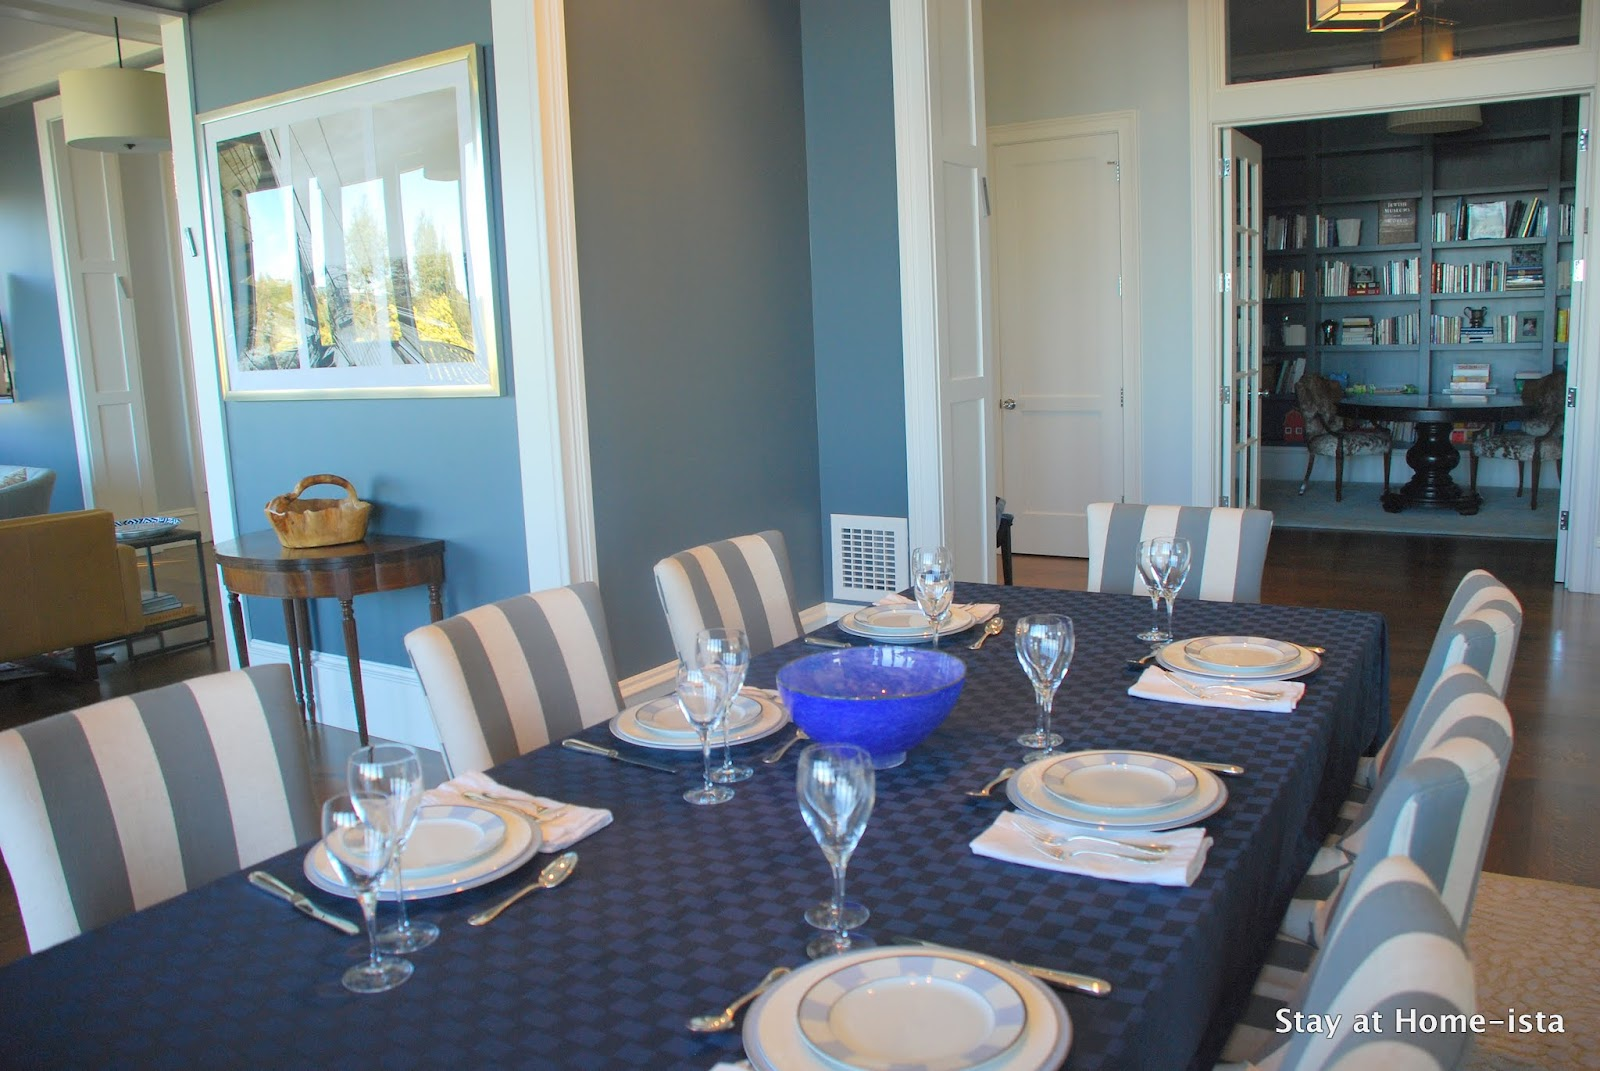 Stay at Home-ista: Charcoal Grey Dining Room